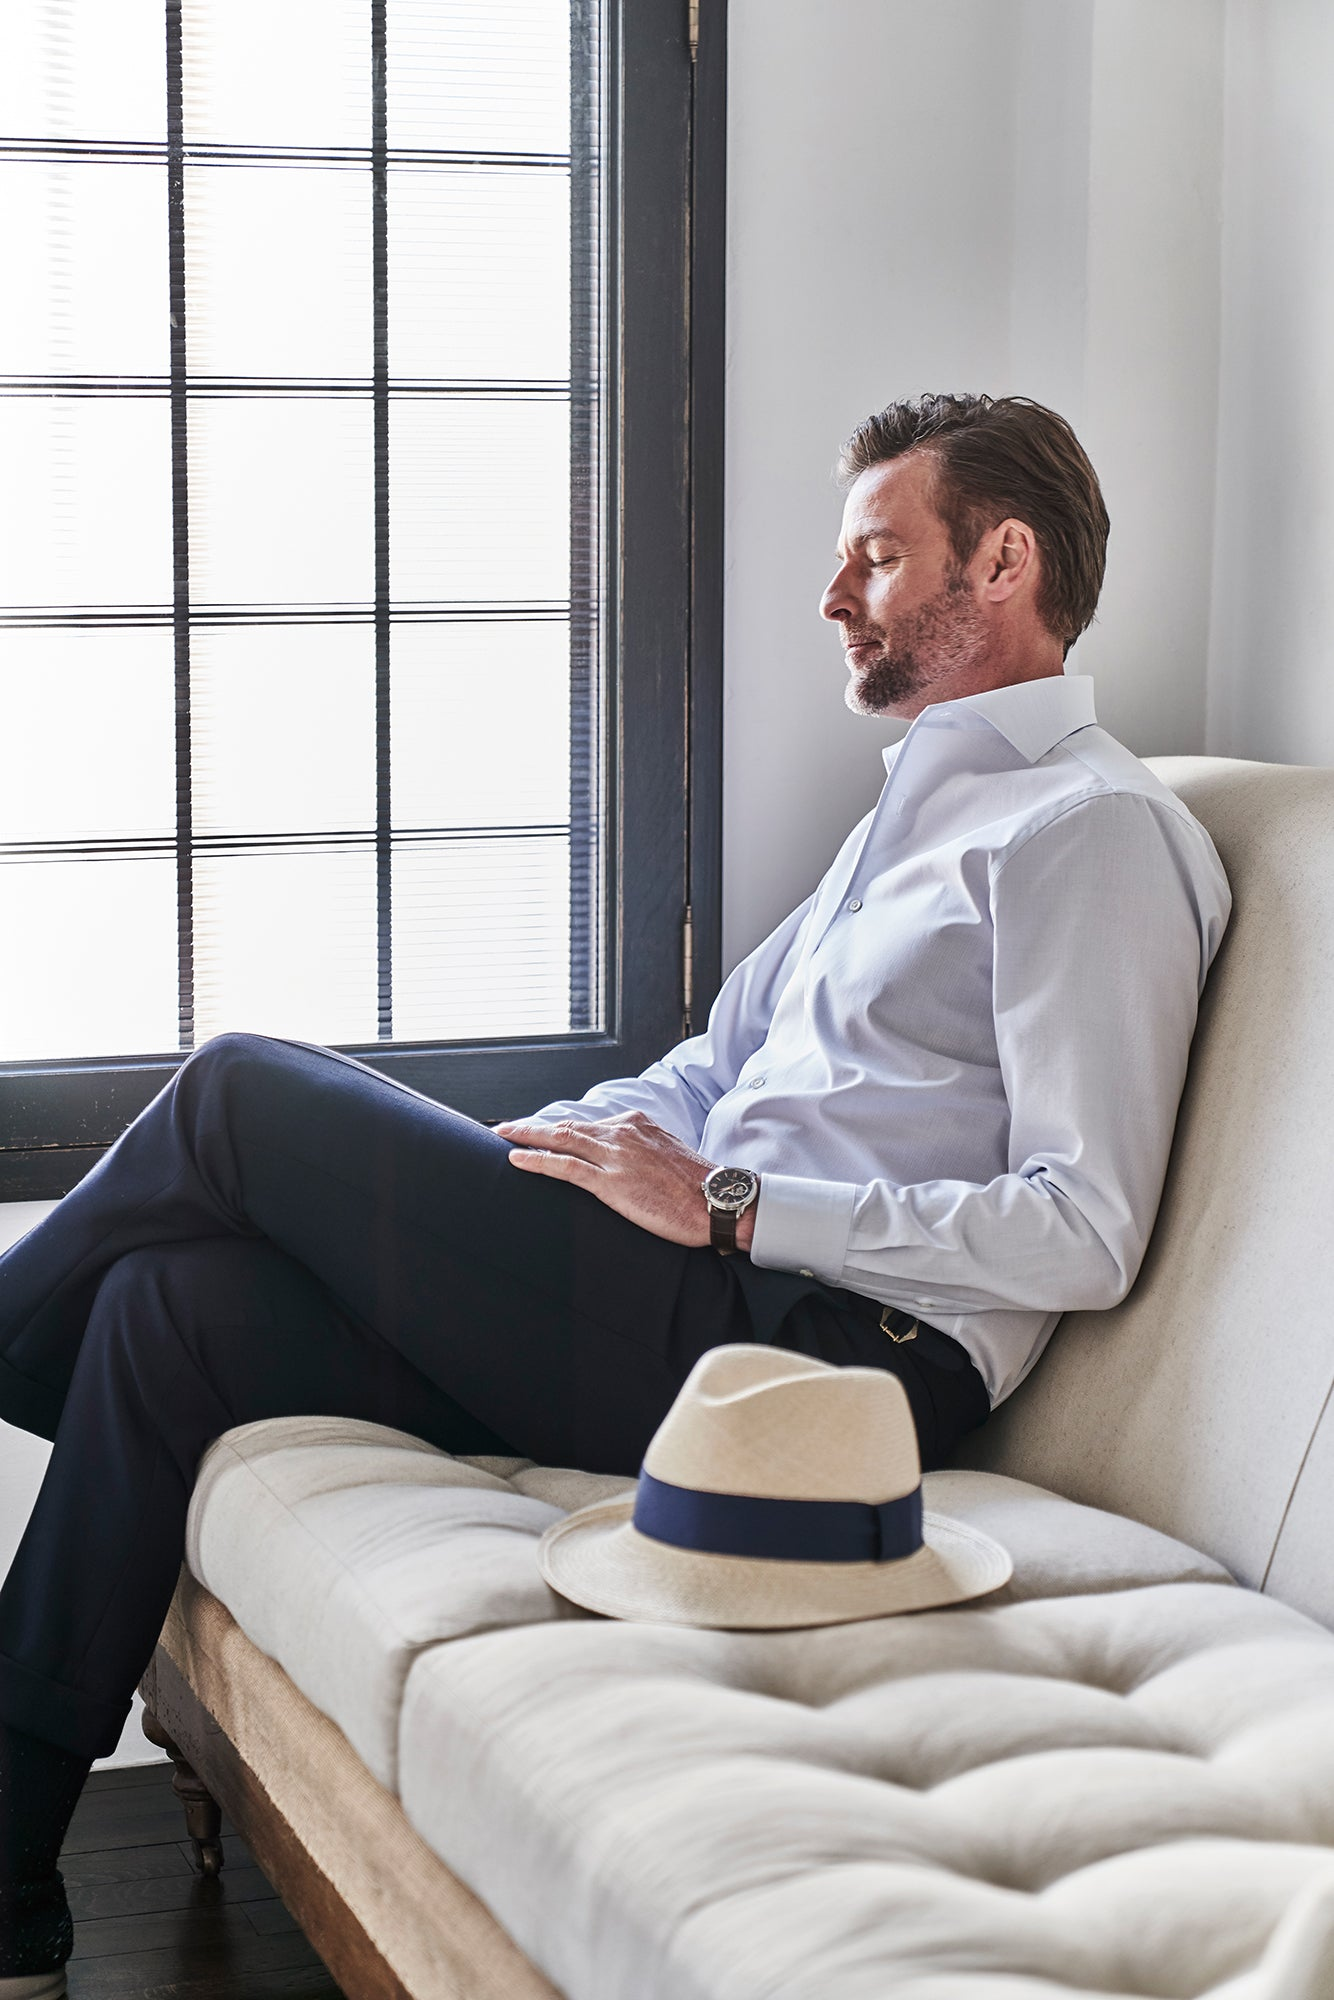 A man relaxing by a window on a couch in a dress shirt left unbuttoned at the top and trousers